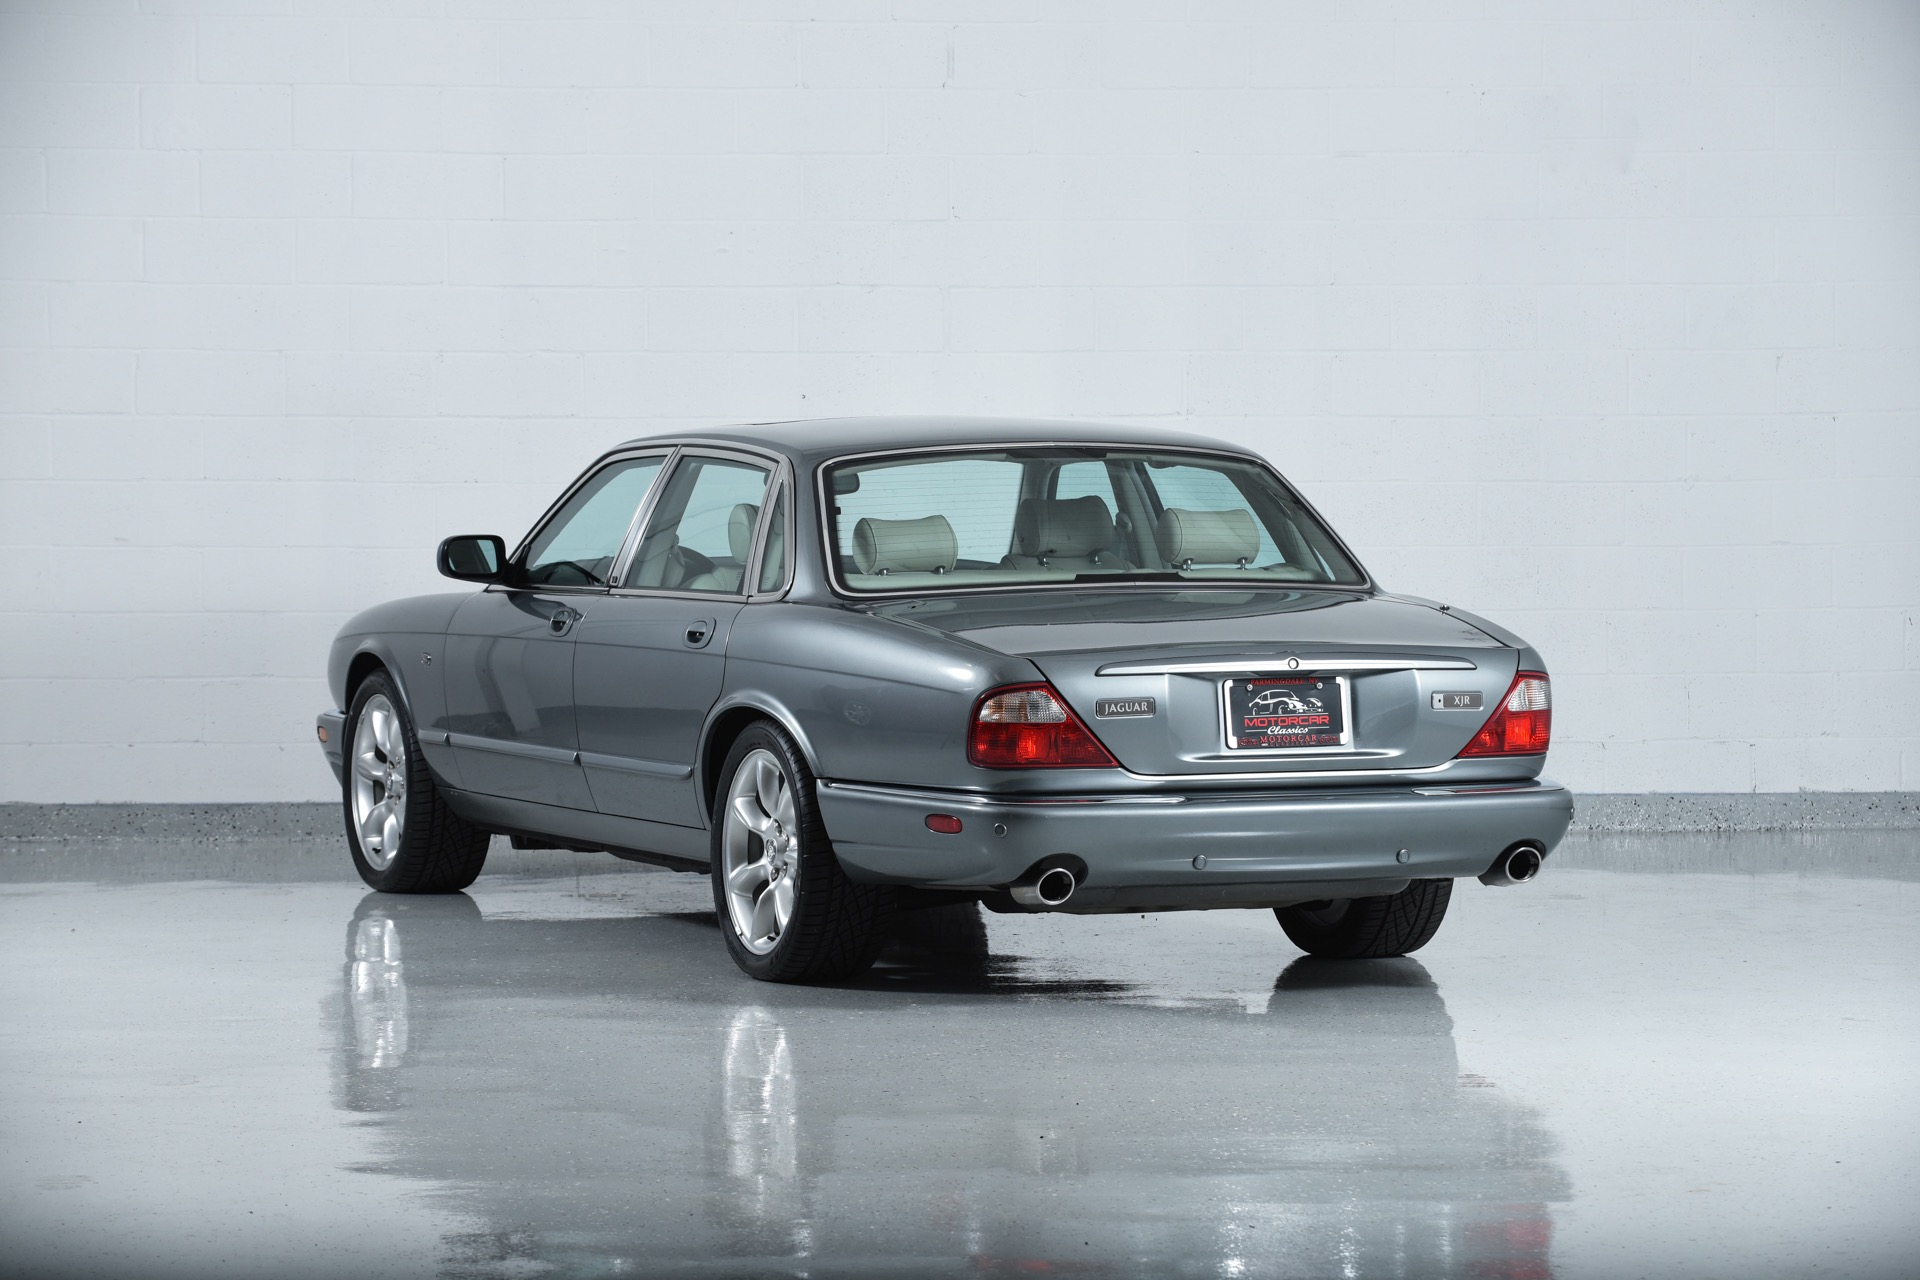 and at download in new specsrhnetcarshowcom paramus pictures jaguar information u autocomrhautocom for sale cars xjr used